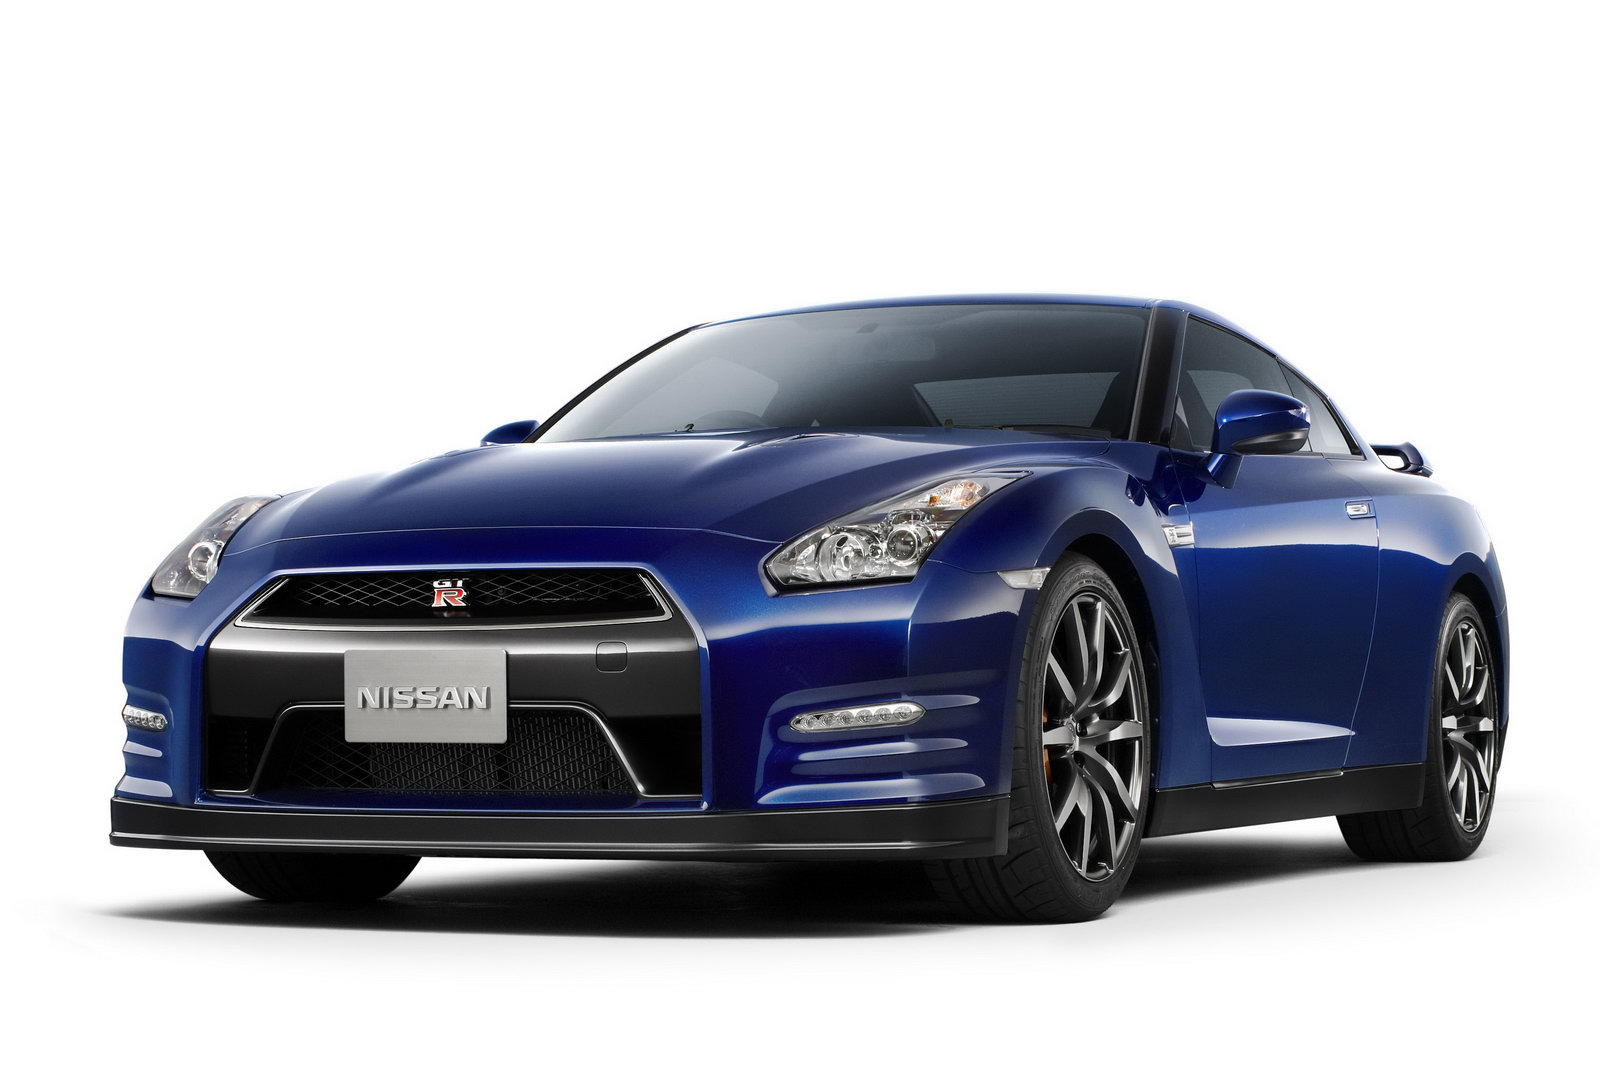 Nissan GT-R 3.8 2012 photo - 12